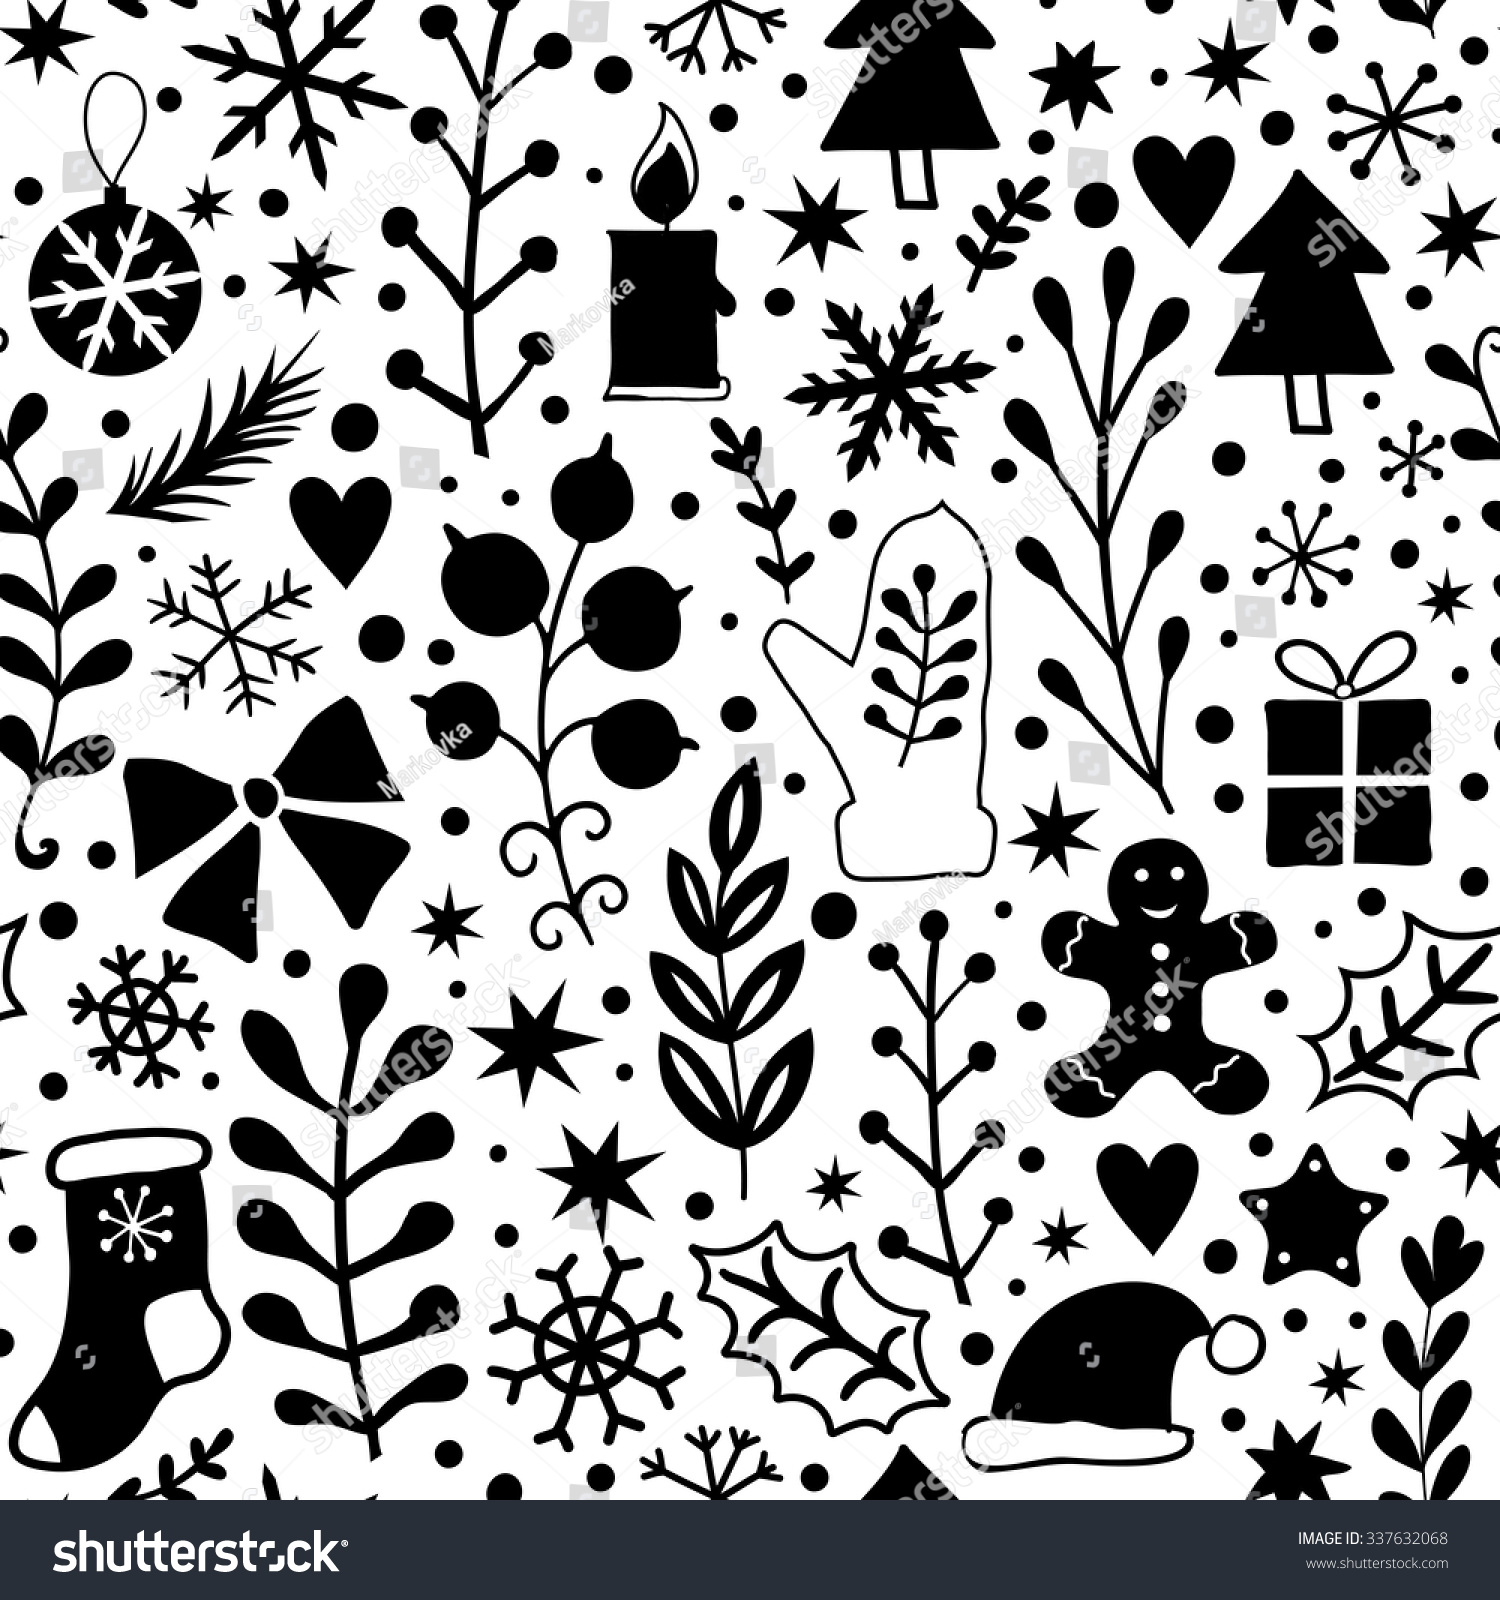 Black And White Wrapping Paper Merry Christmas Seamless Pattern Black White Stock Vector